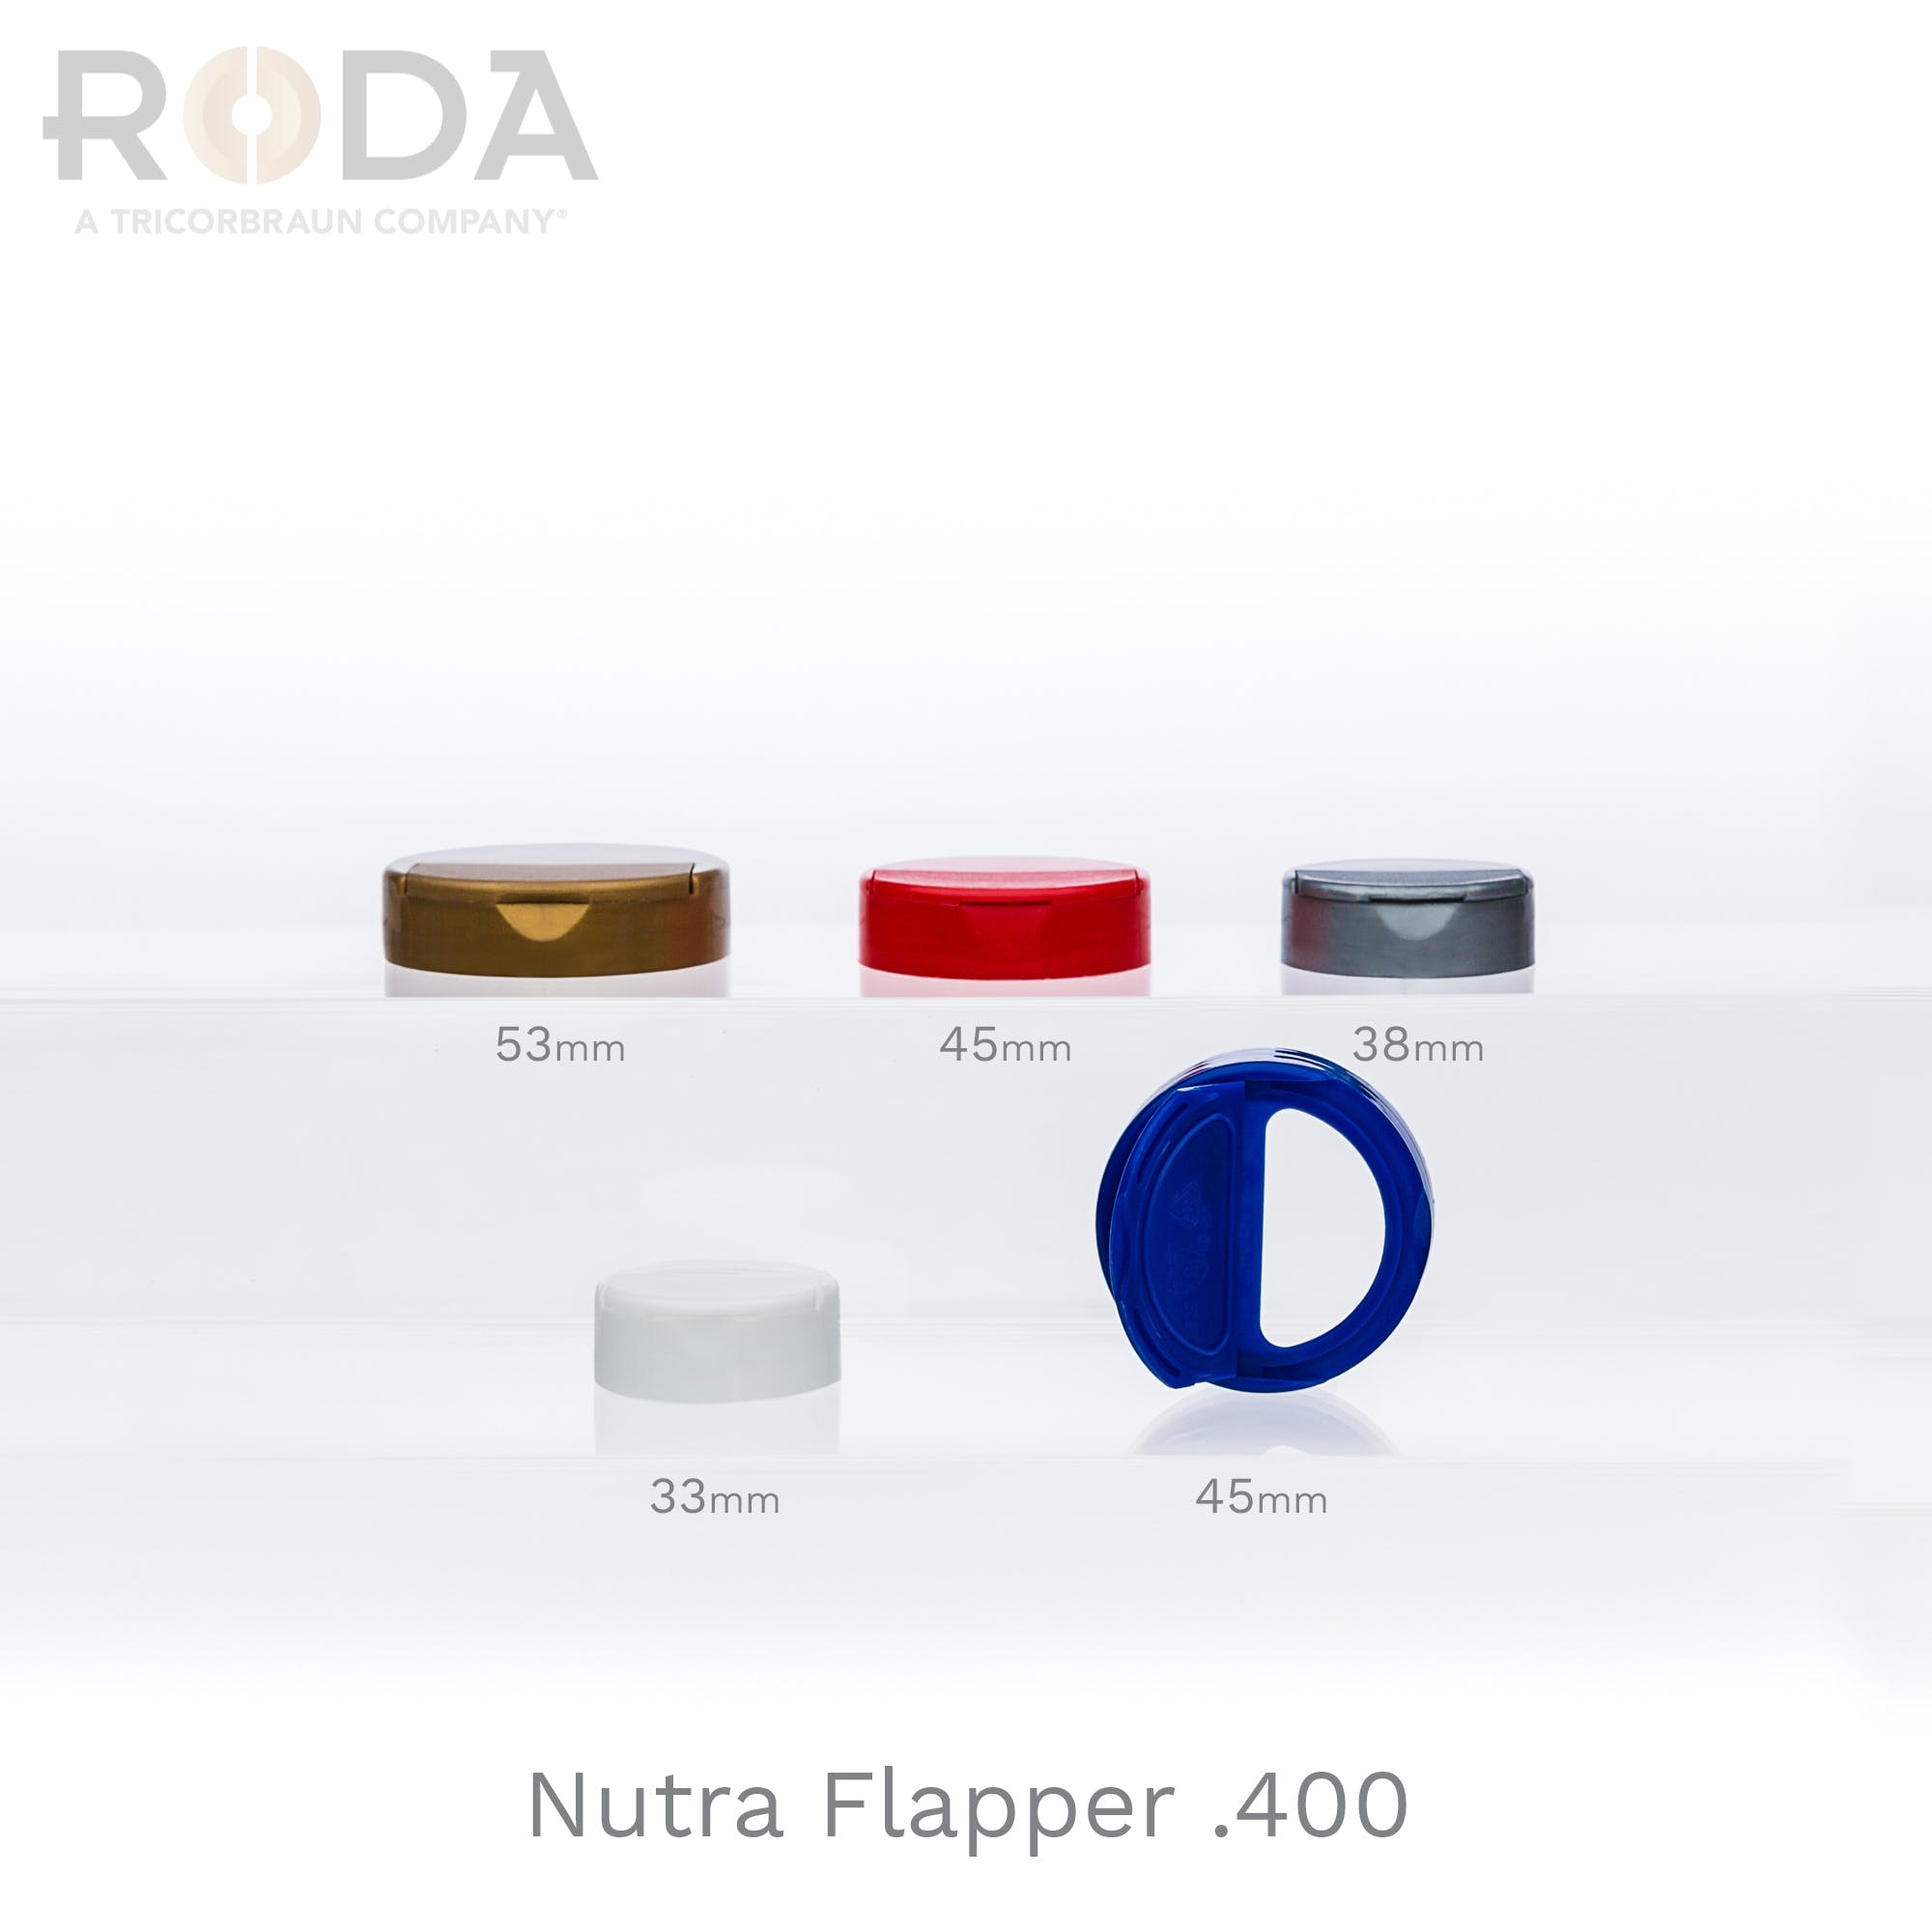 Nutra Flapper .400